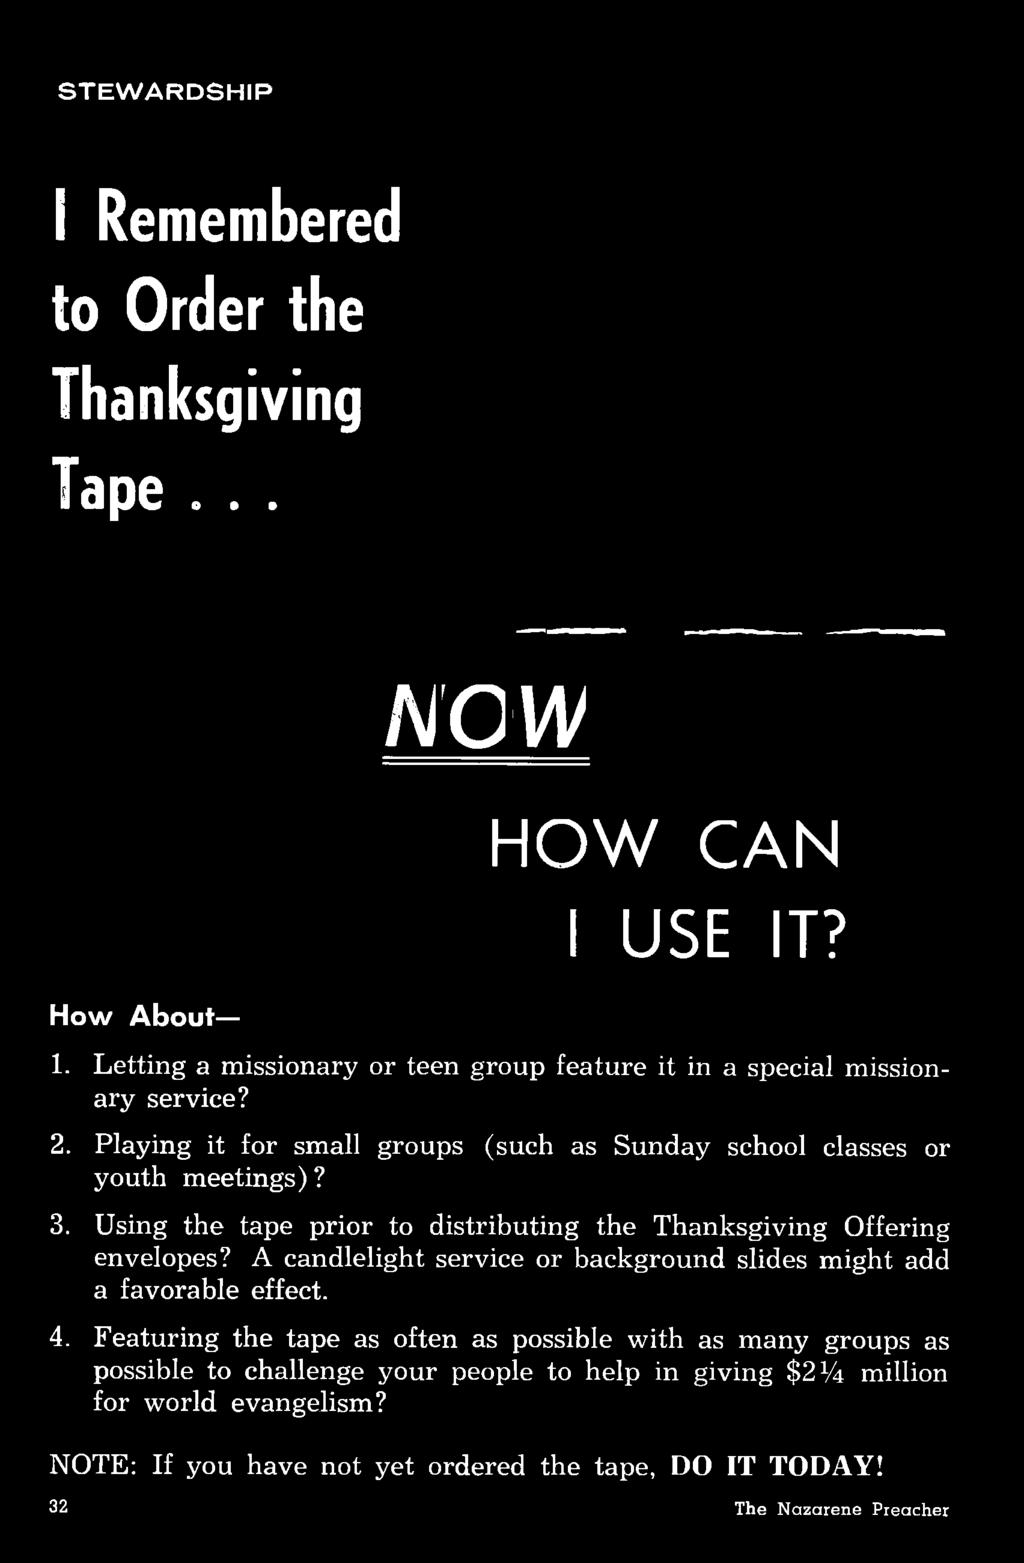 3. Using the tape prior to distributing the Thanksgiving Offering envelopes? A candlelight service or background slides might add a favorable effect. 4.